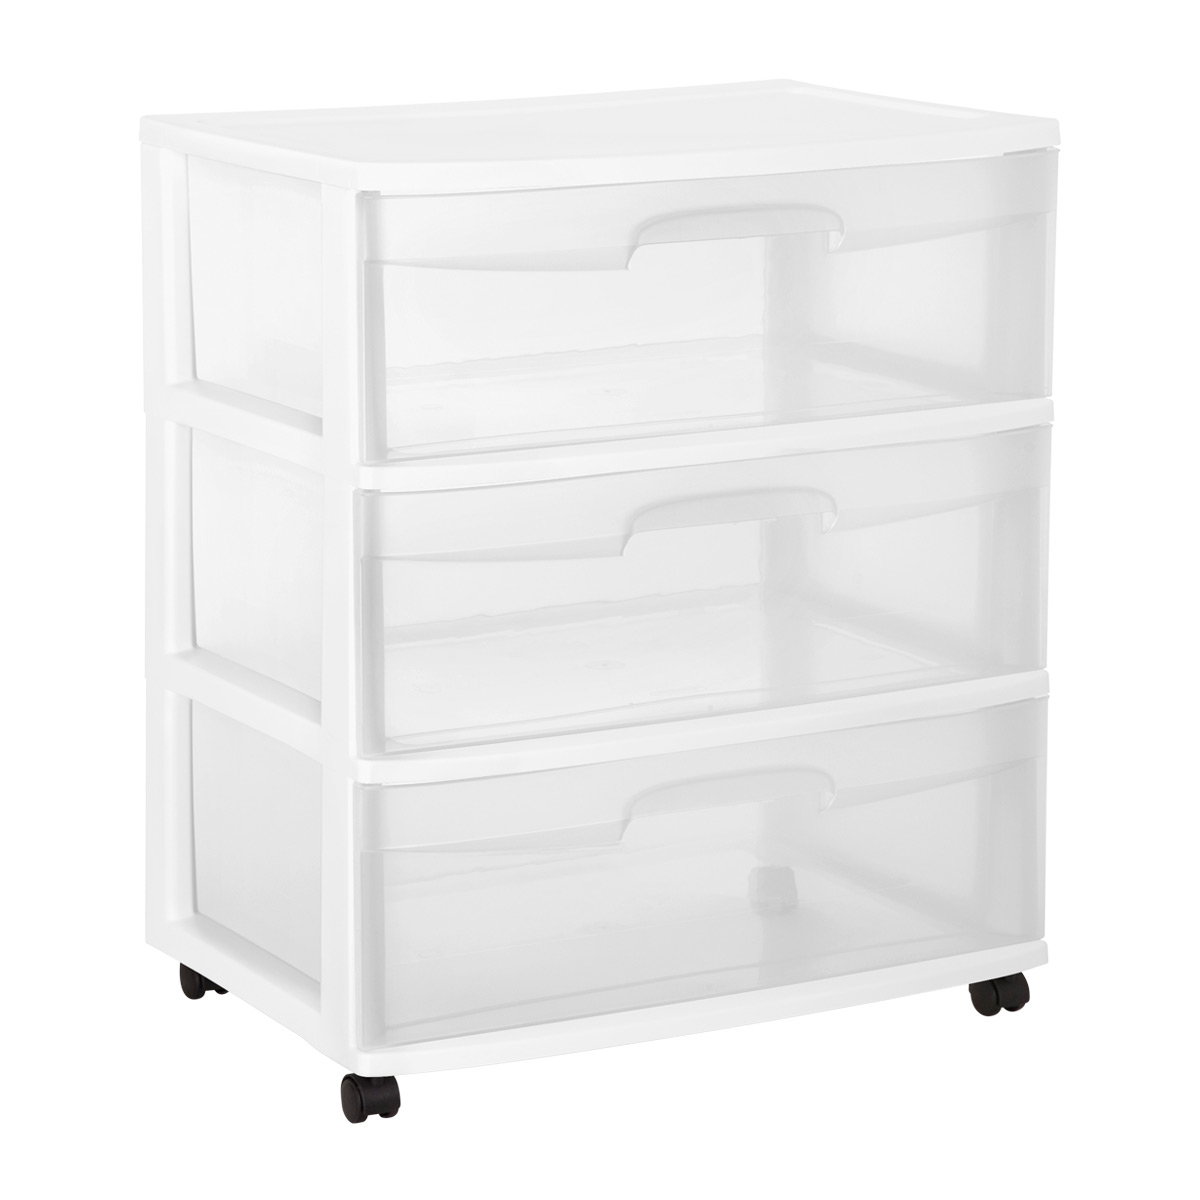 Sterilite Wide 3 Drawer Chest With Wheels